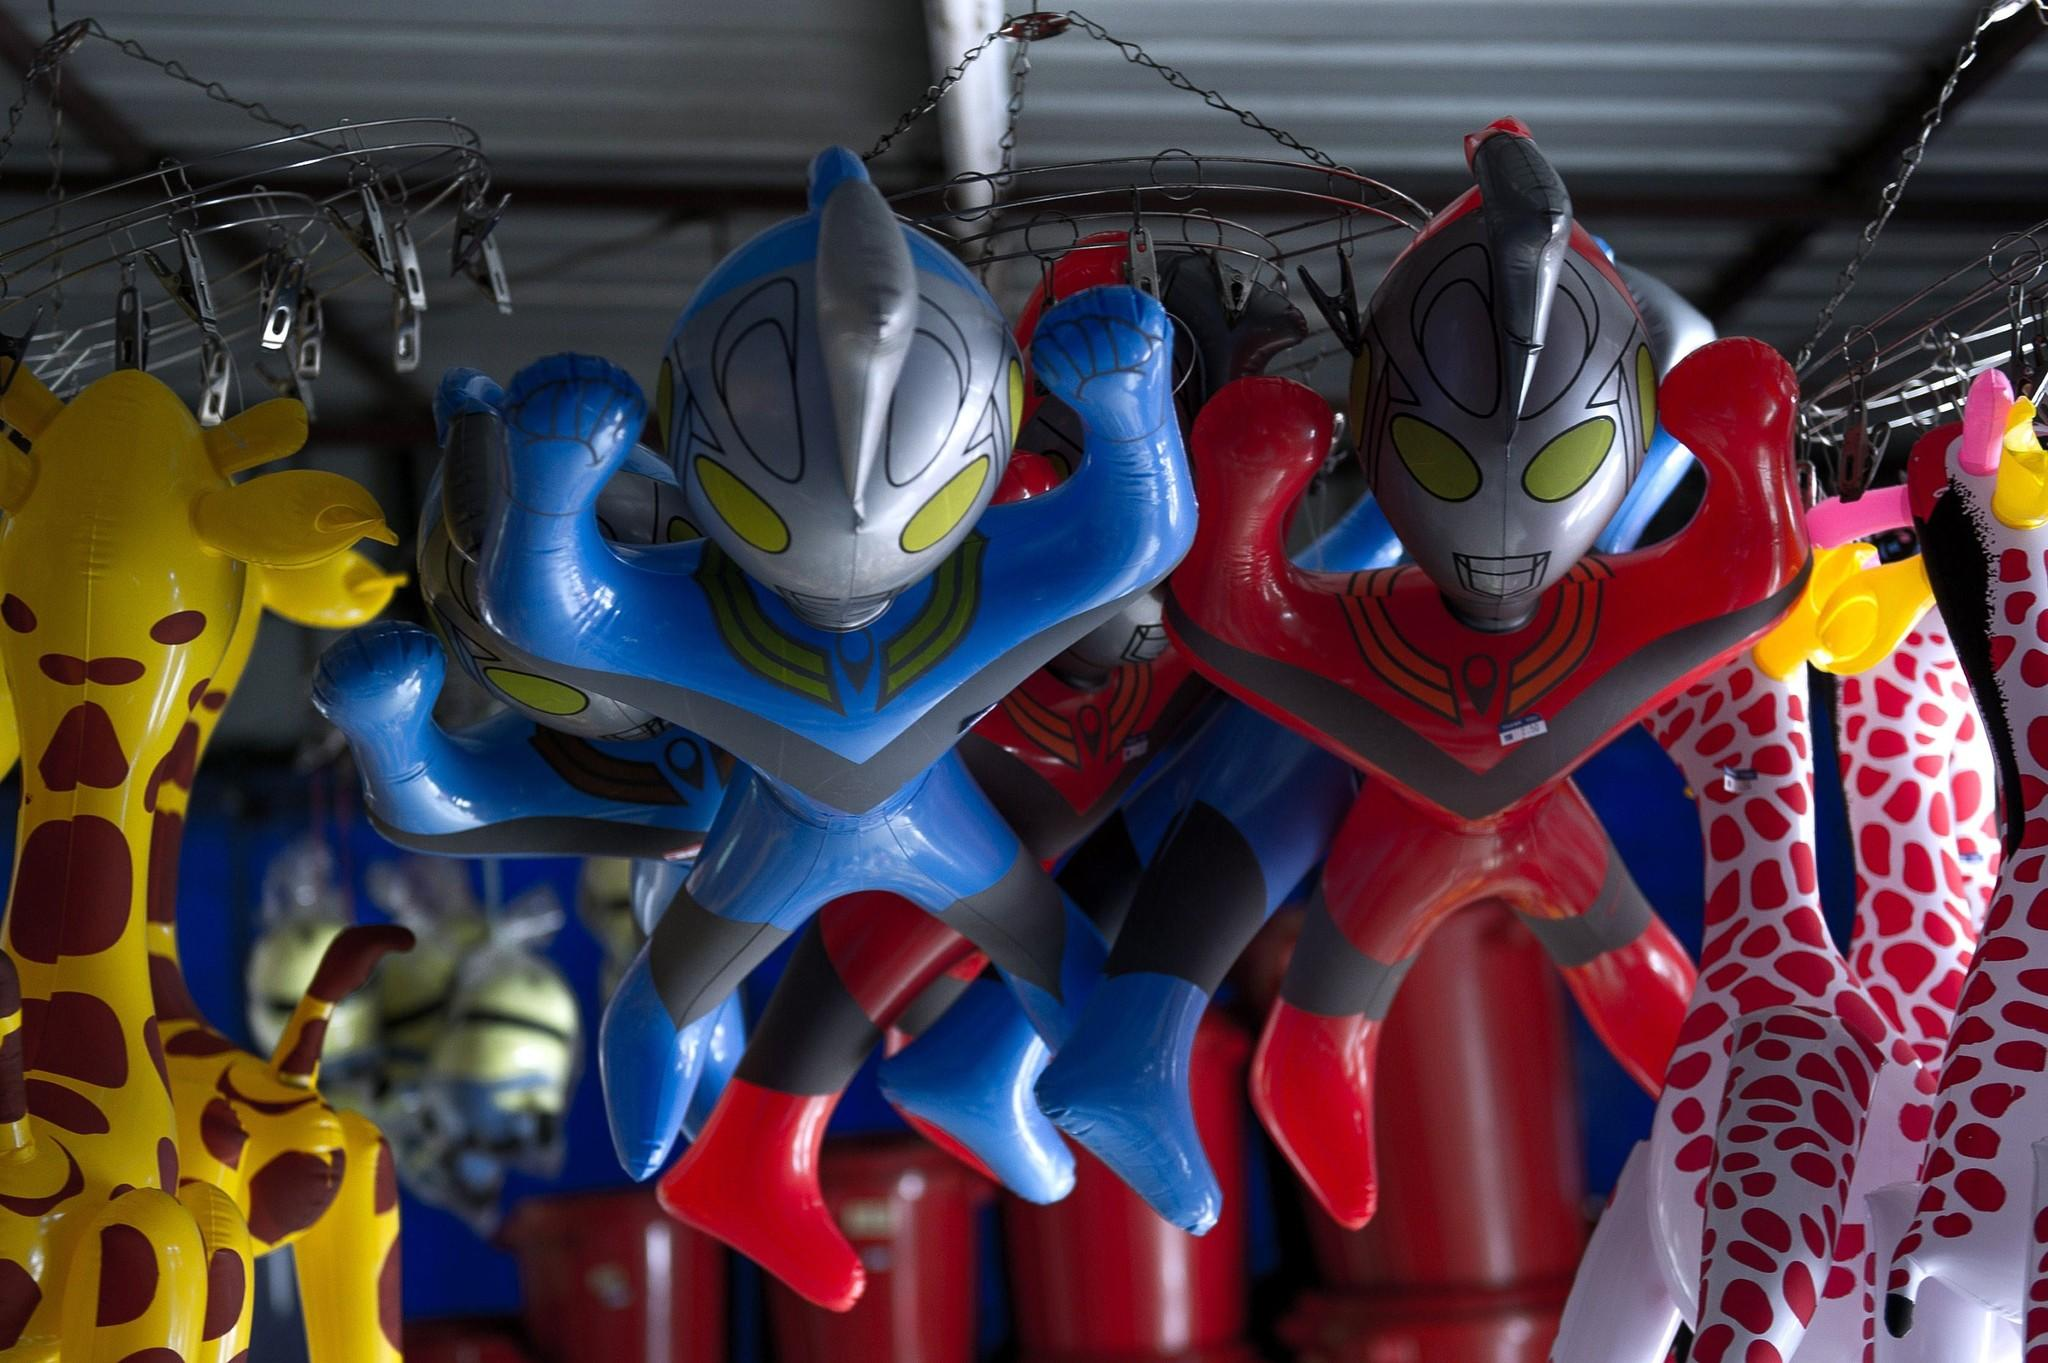 "Plastic toys of Japanese animation superhero ""Ultraman"" hang from the ceiling of a shop for sale in Karak, east of Kuala Lumpur on March 7, 2014. Malaysia has banned a translation of an Ultraman comic book after it referred to the popular Japanese superhero as ""Allah"", authorities said on March 7 during an ongoing row over use of the word by non-Muslims. Ultraman first appeared on television in the 1960s and the comic gained popularity worldwide, including in Malaysia, where versions dubbed in Malay were screened on TV and comic books translated into the national language."